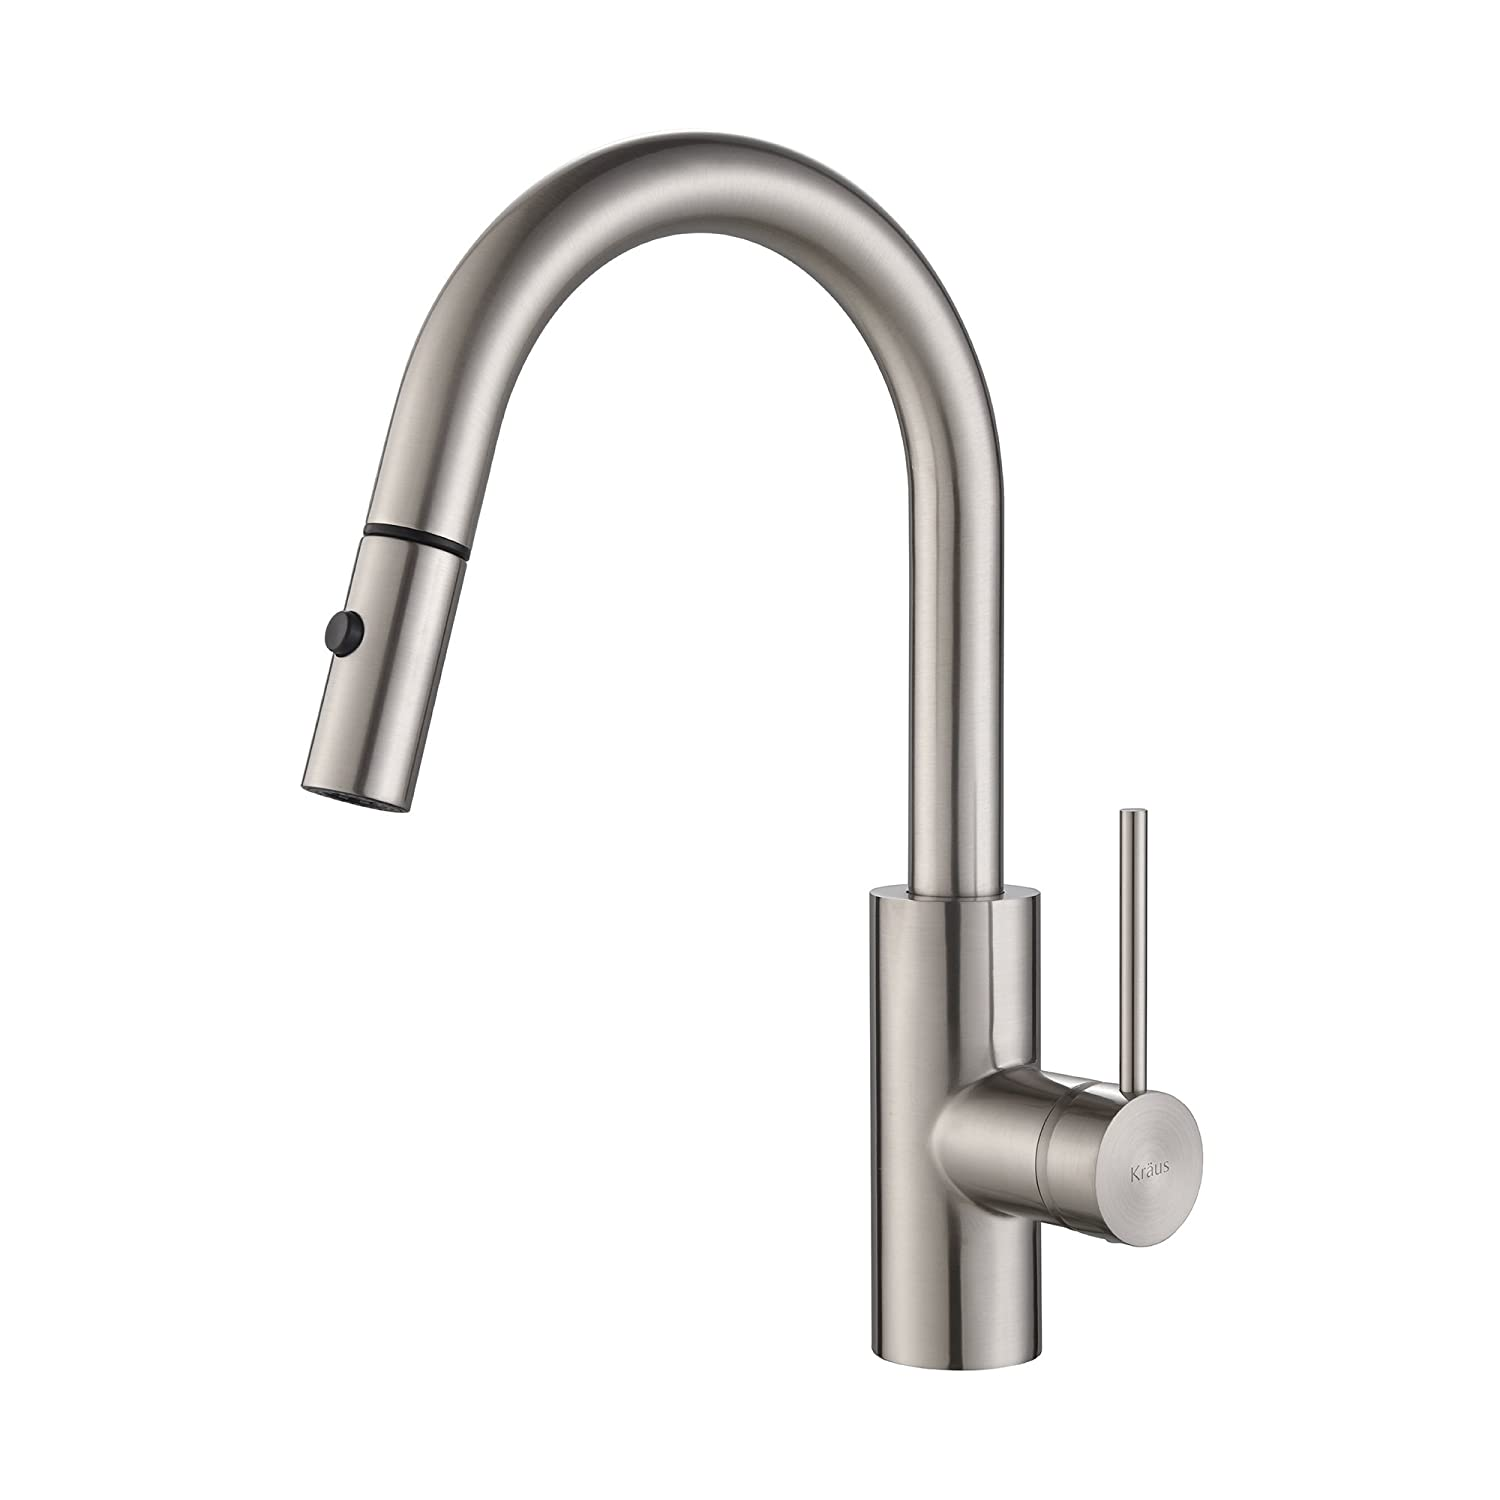 allegro regarding valve grand v spray sink with faucet interior fau moen repair leaky fix steel how shower dripping ful house bathtub diagram replacement optik leaking handle cartridge out sprayer design bathroom toggle pull to e jpeg faucets delta diverter home removal decor parts hansgrohe kitchen